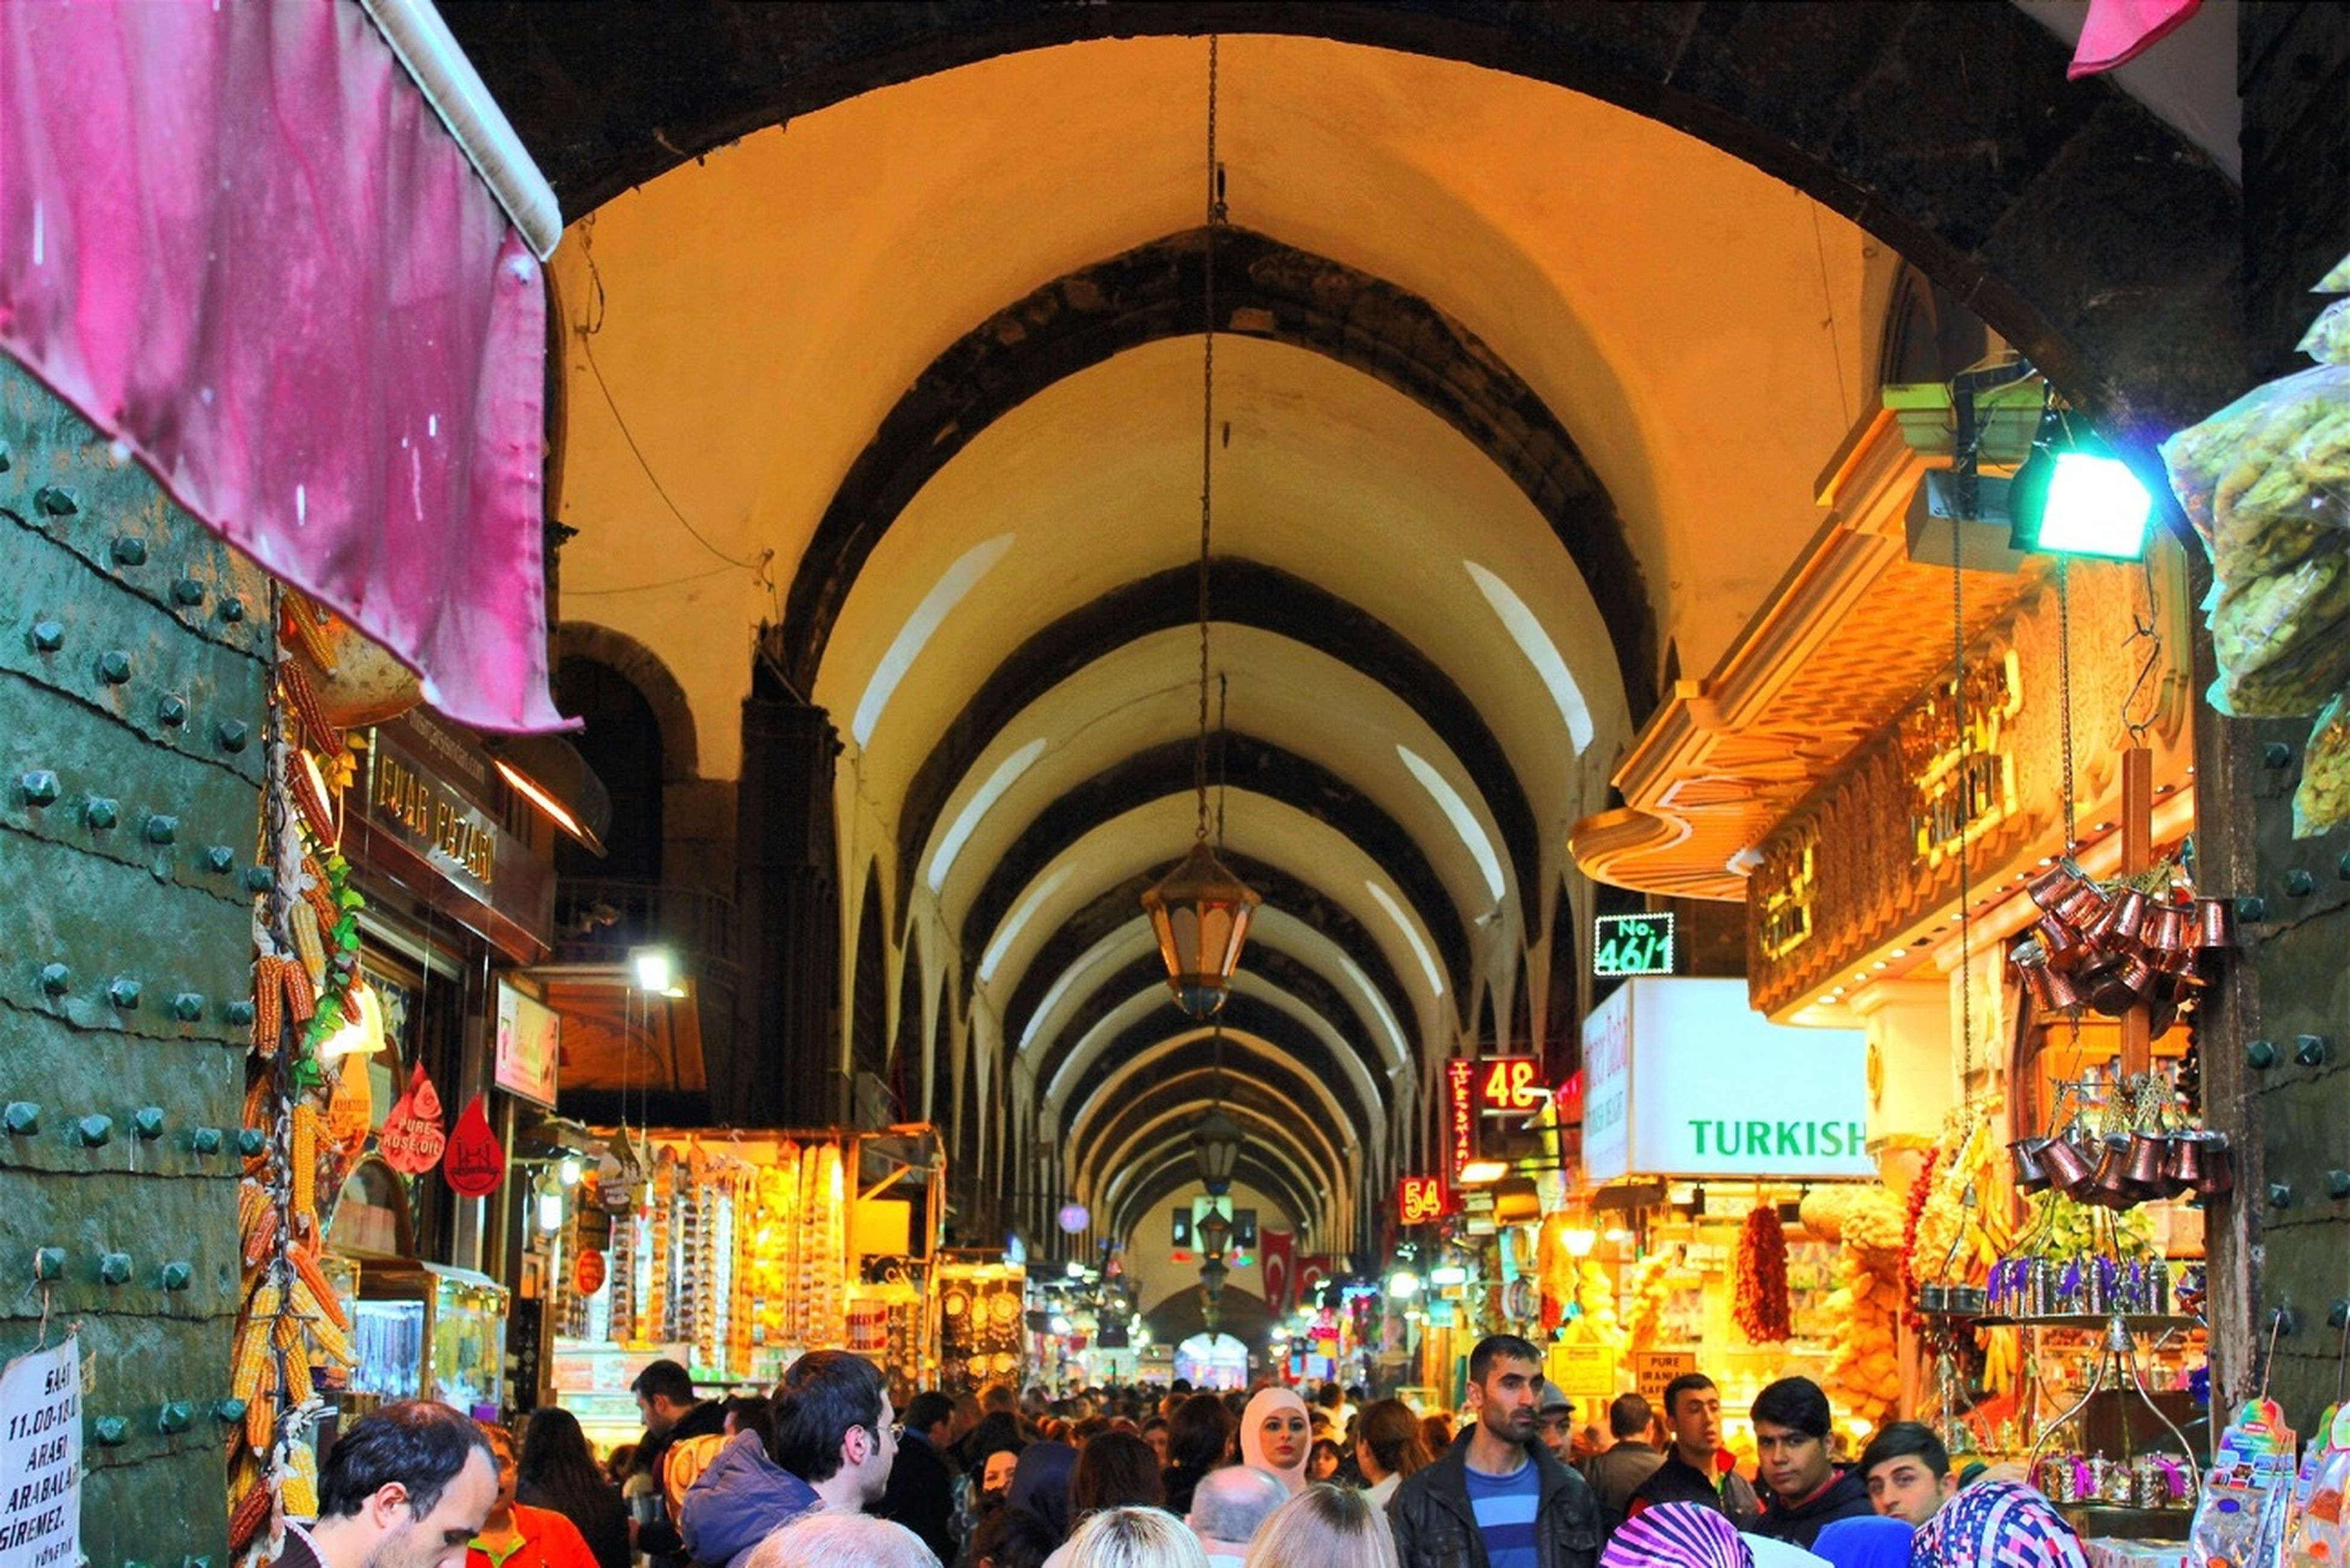 large group of people, illuminated, person, men, lifestyles, crowd, leisure activity, indoors, architecture, built structure, night, lighting equipment, mixed age range, walking, city life, market, arts culture and entertainment, celebration, ceiling